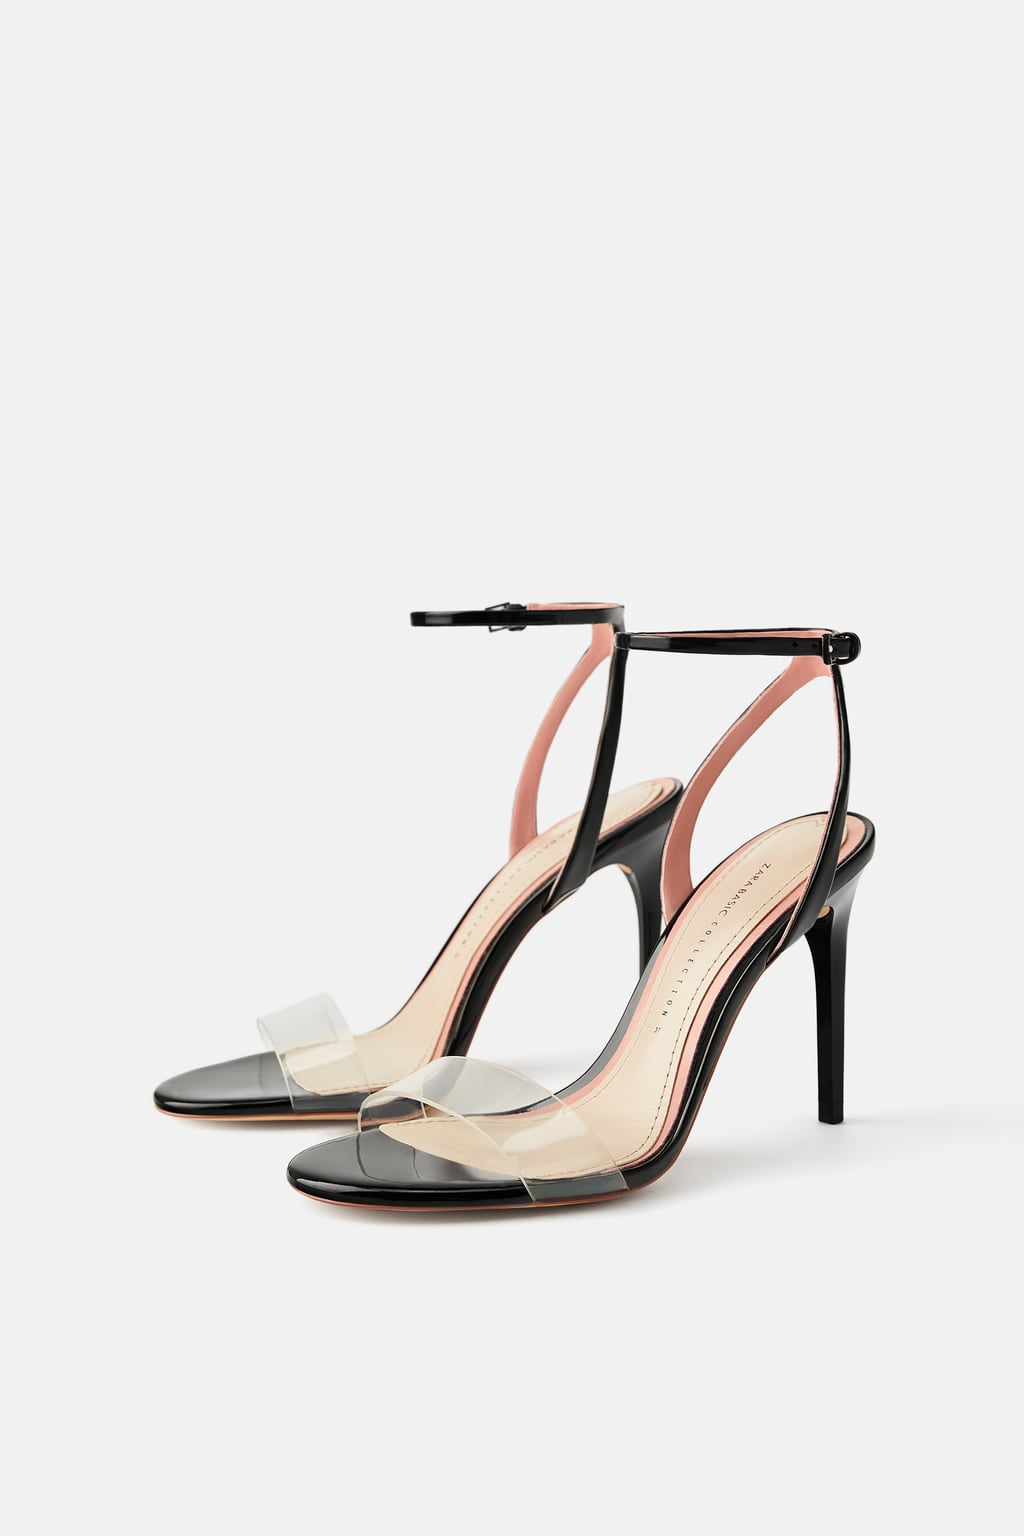 ZARA High Heeled Vinyl Shoe- $49.90